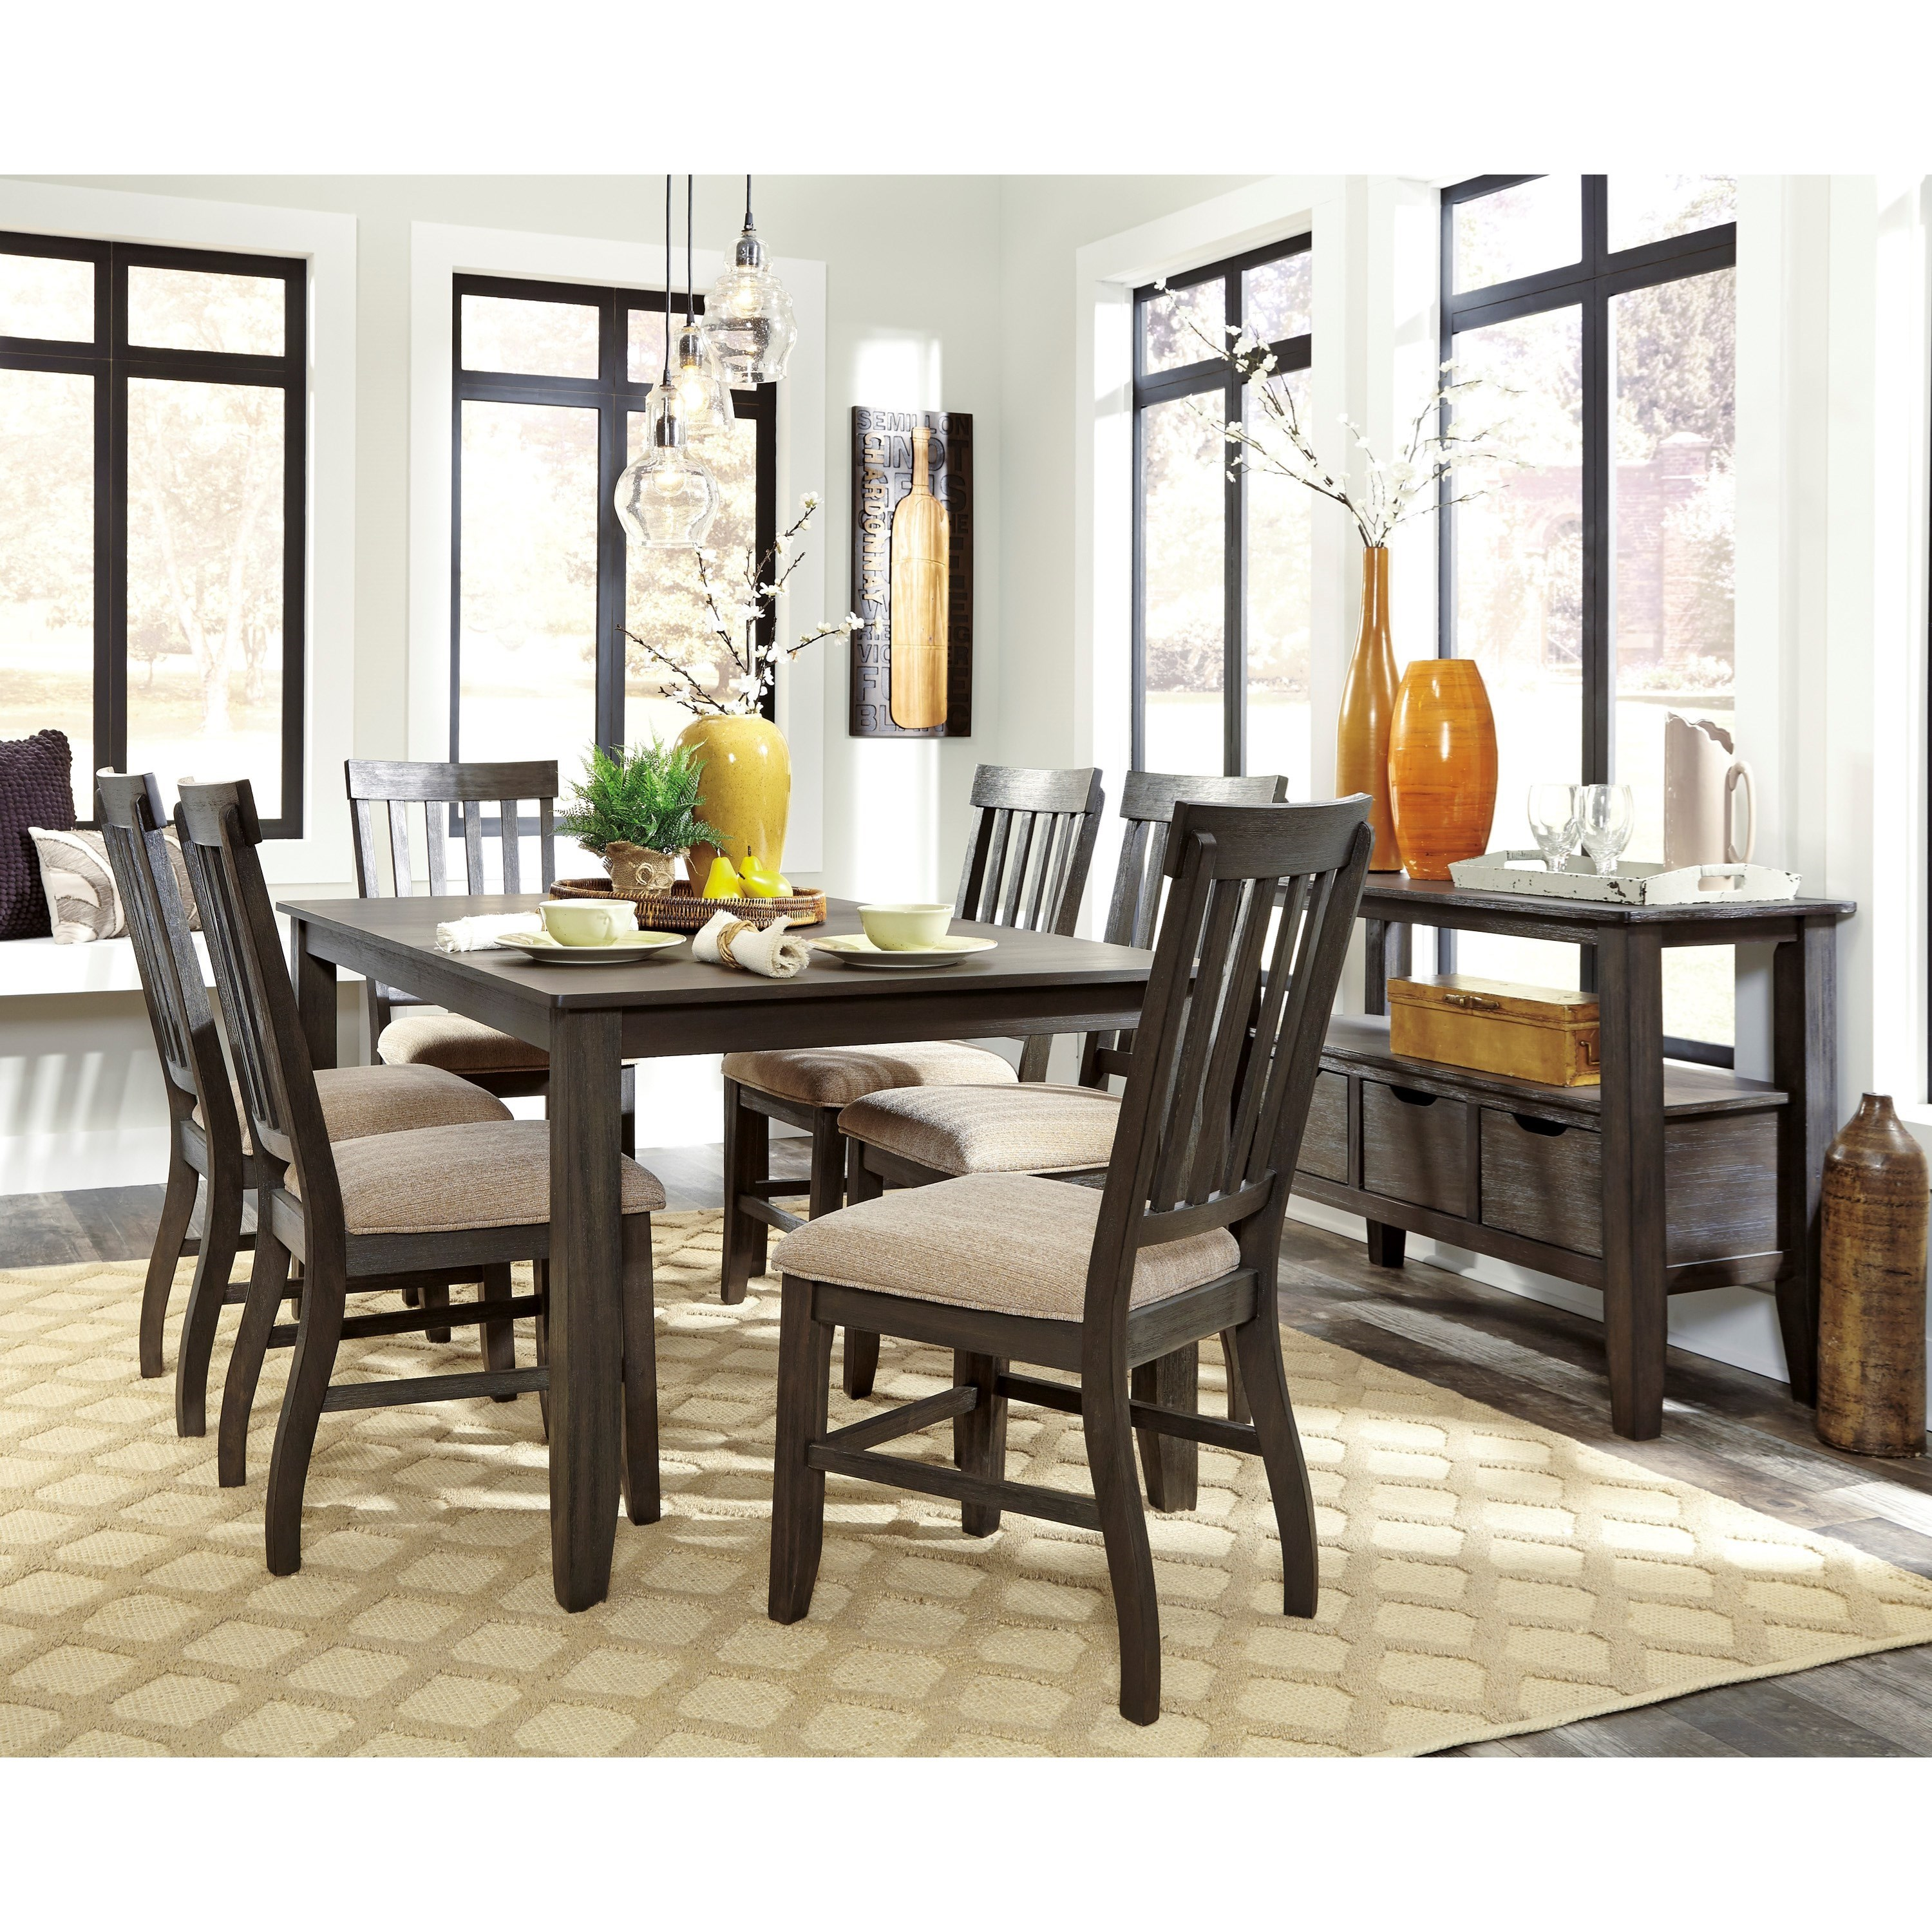 Signature design by ashley dresbar casual dining room for Casual dining room furniture